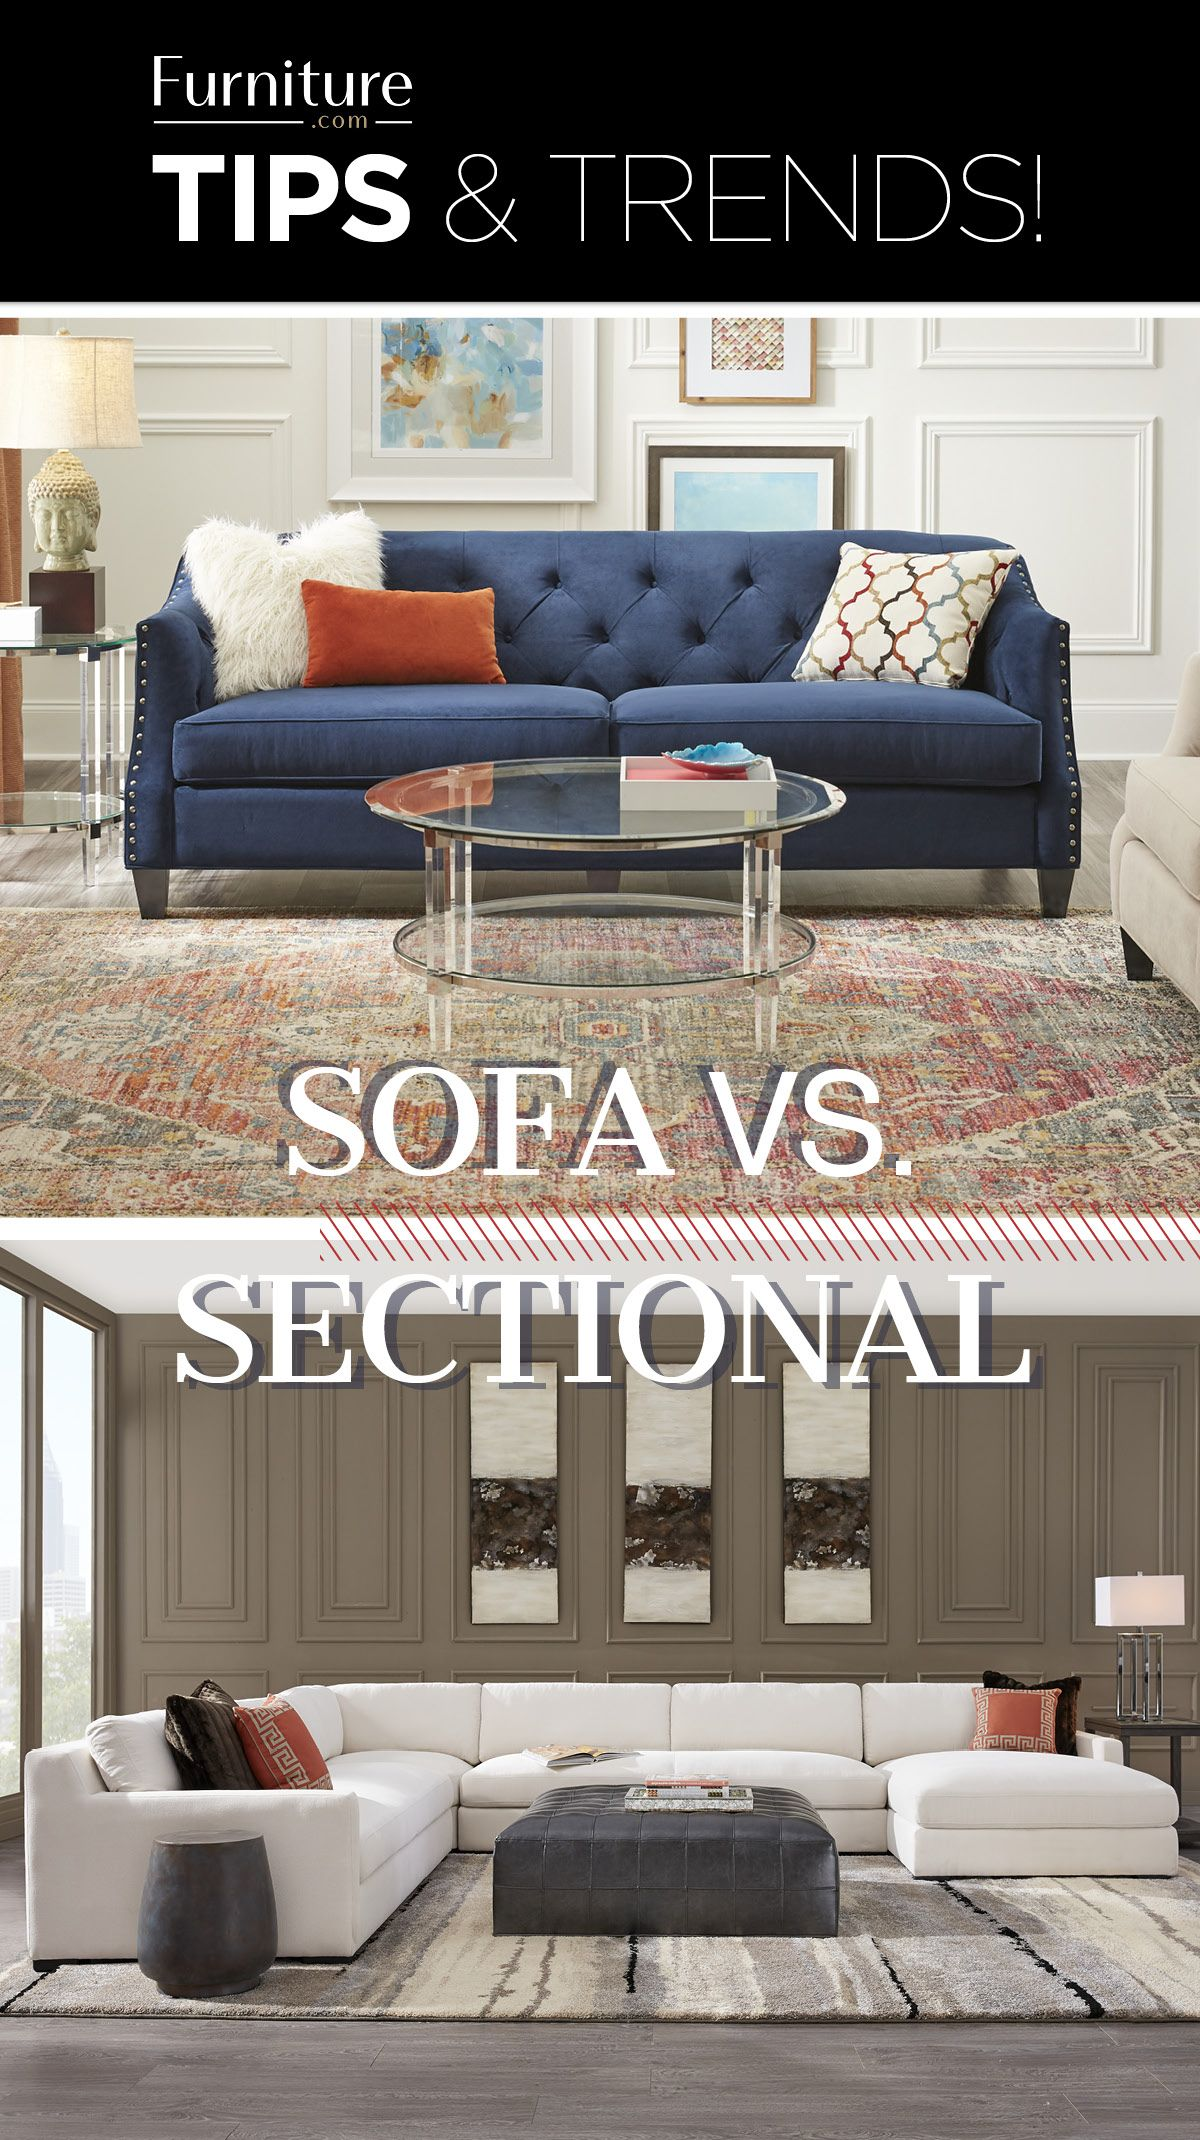 Sofa Vs Sectional It S A Hard Choice Make Your Living Room